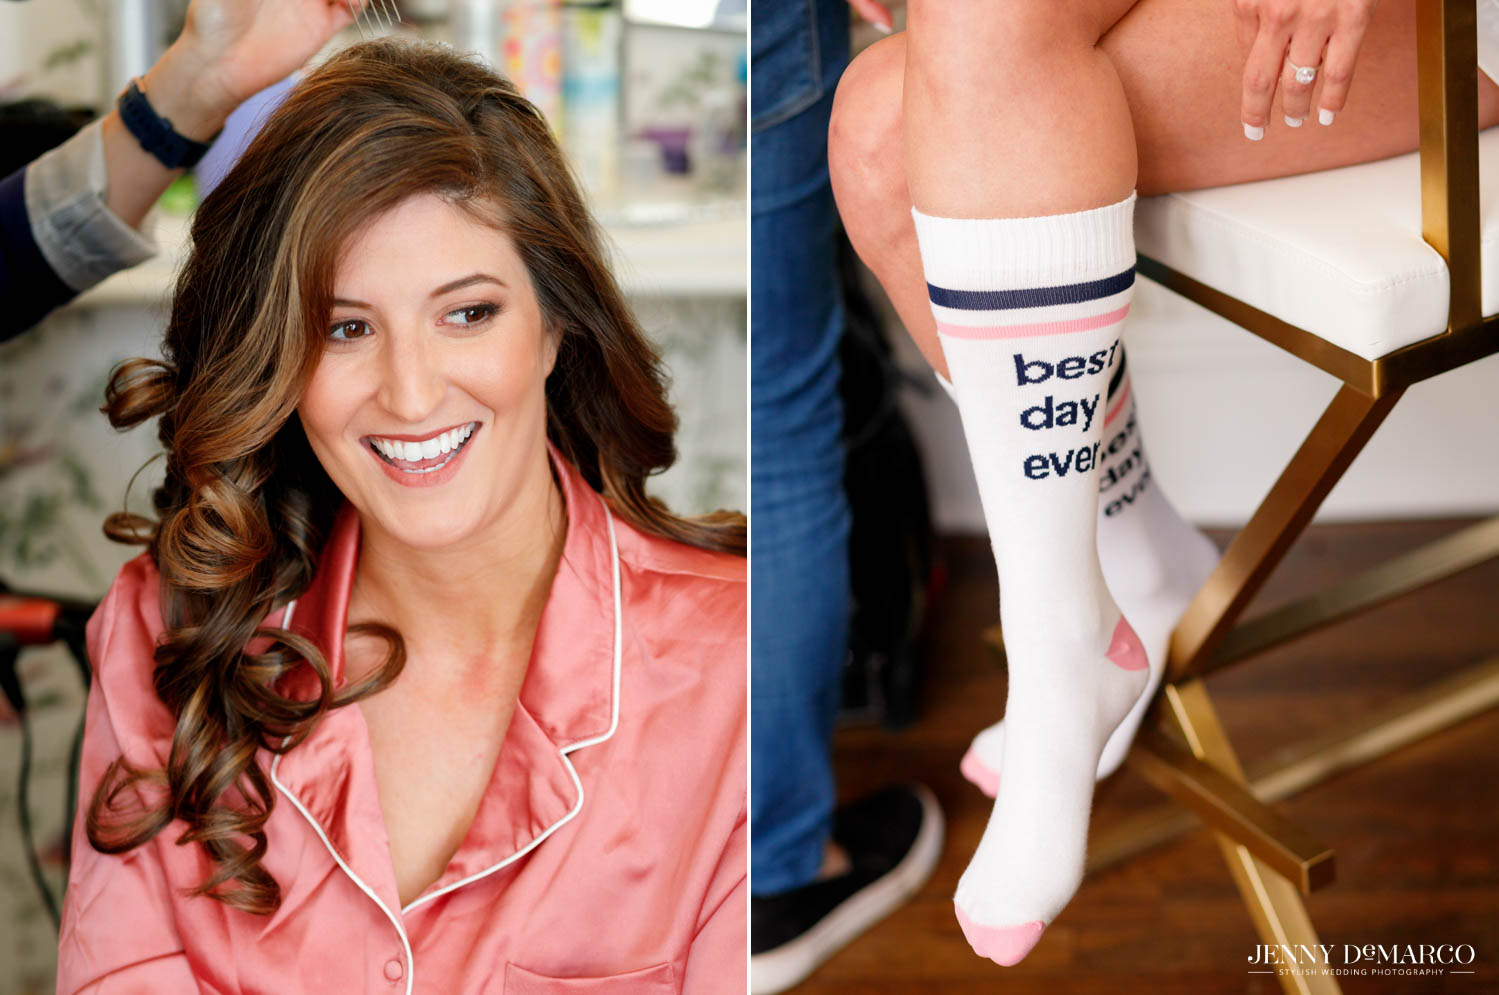 """bridesmaids getting hair curled and bride's socks that say """"best day ever"""""""